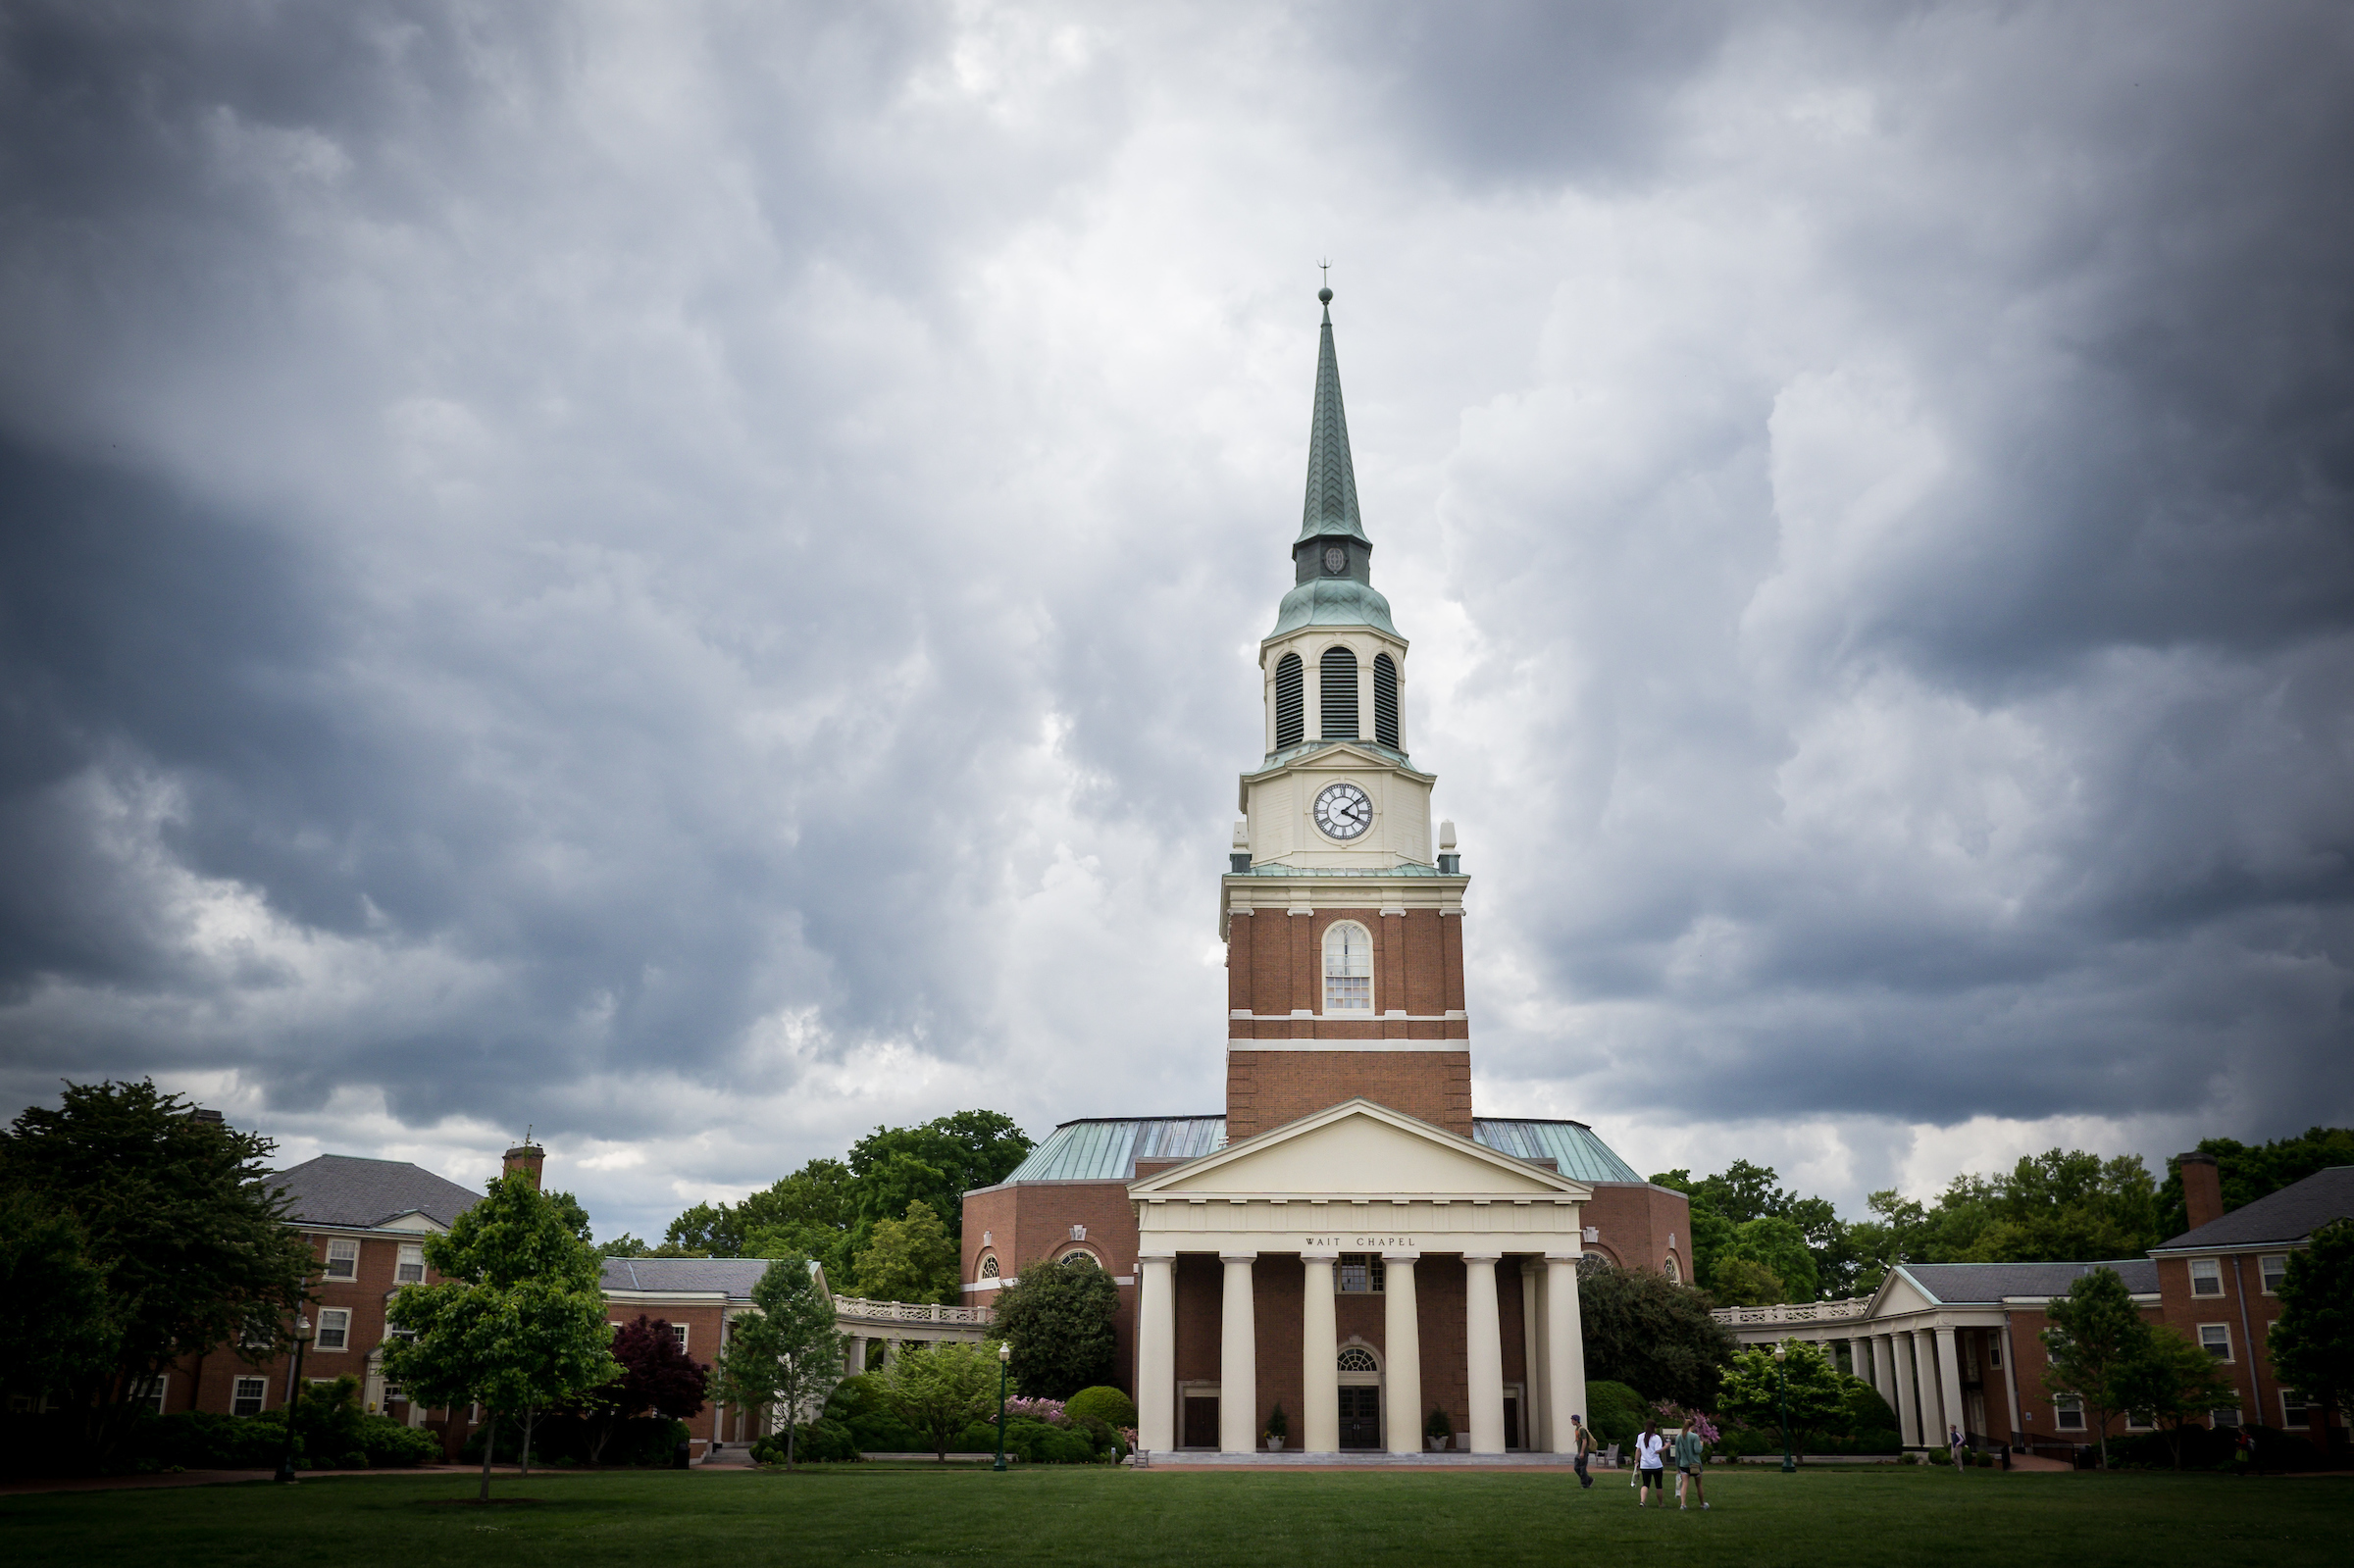 Wait Chapel in Stormy Clouds